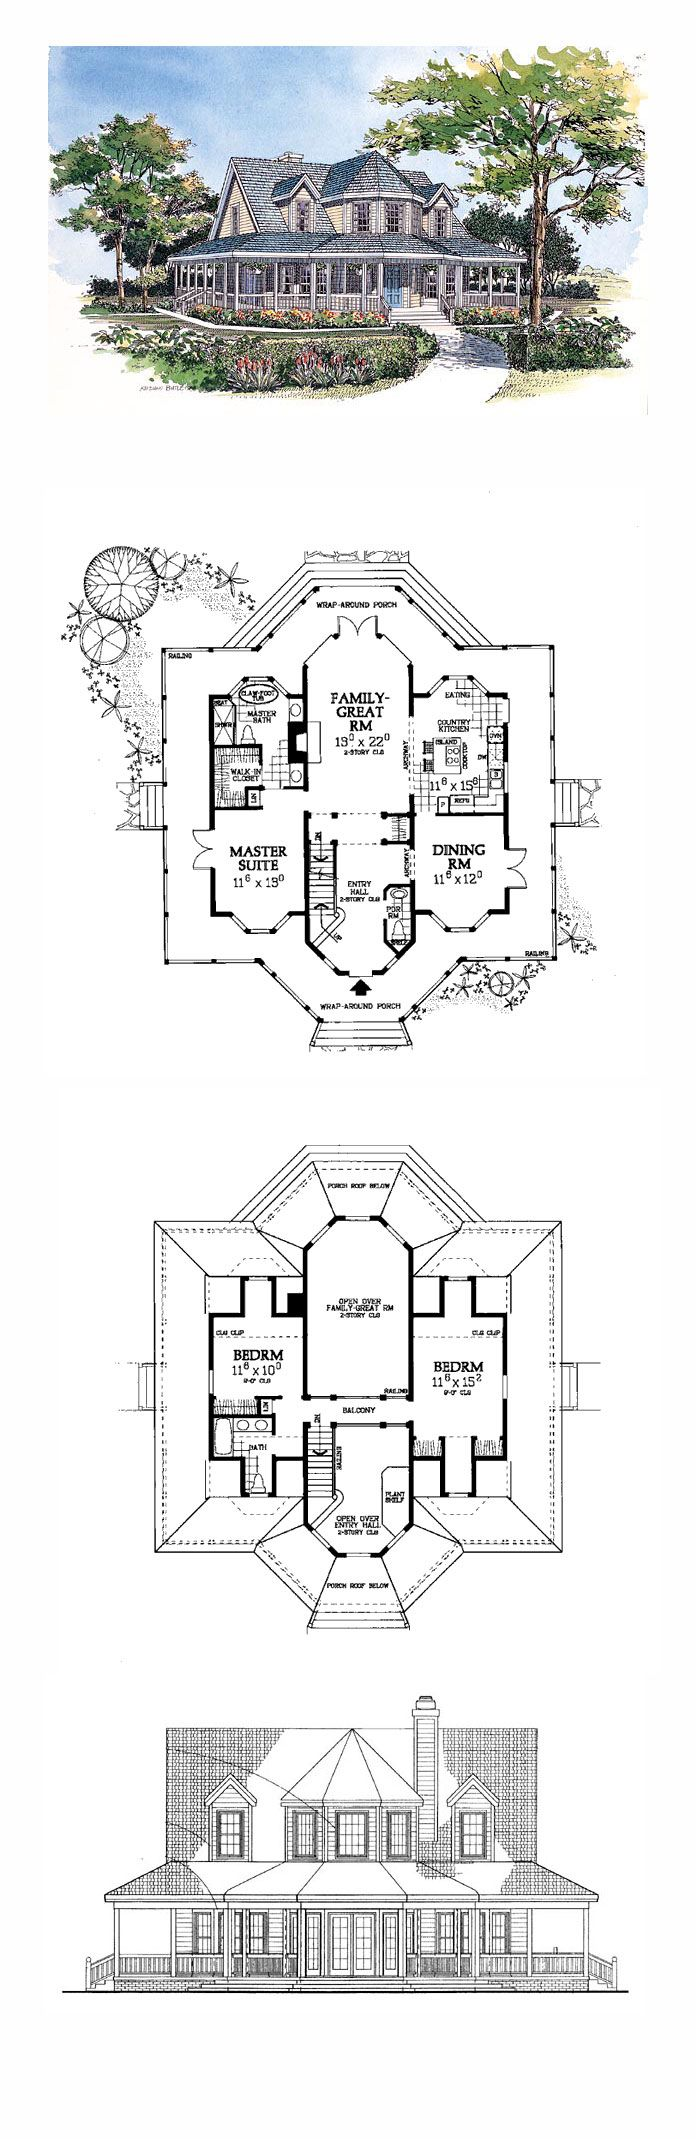 country farmhouse victorian house plan 95560 victorian house farmhouse victorian house plan 99286